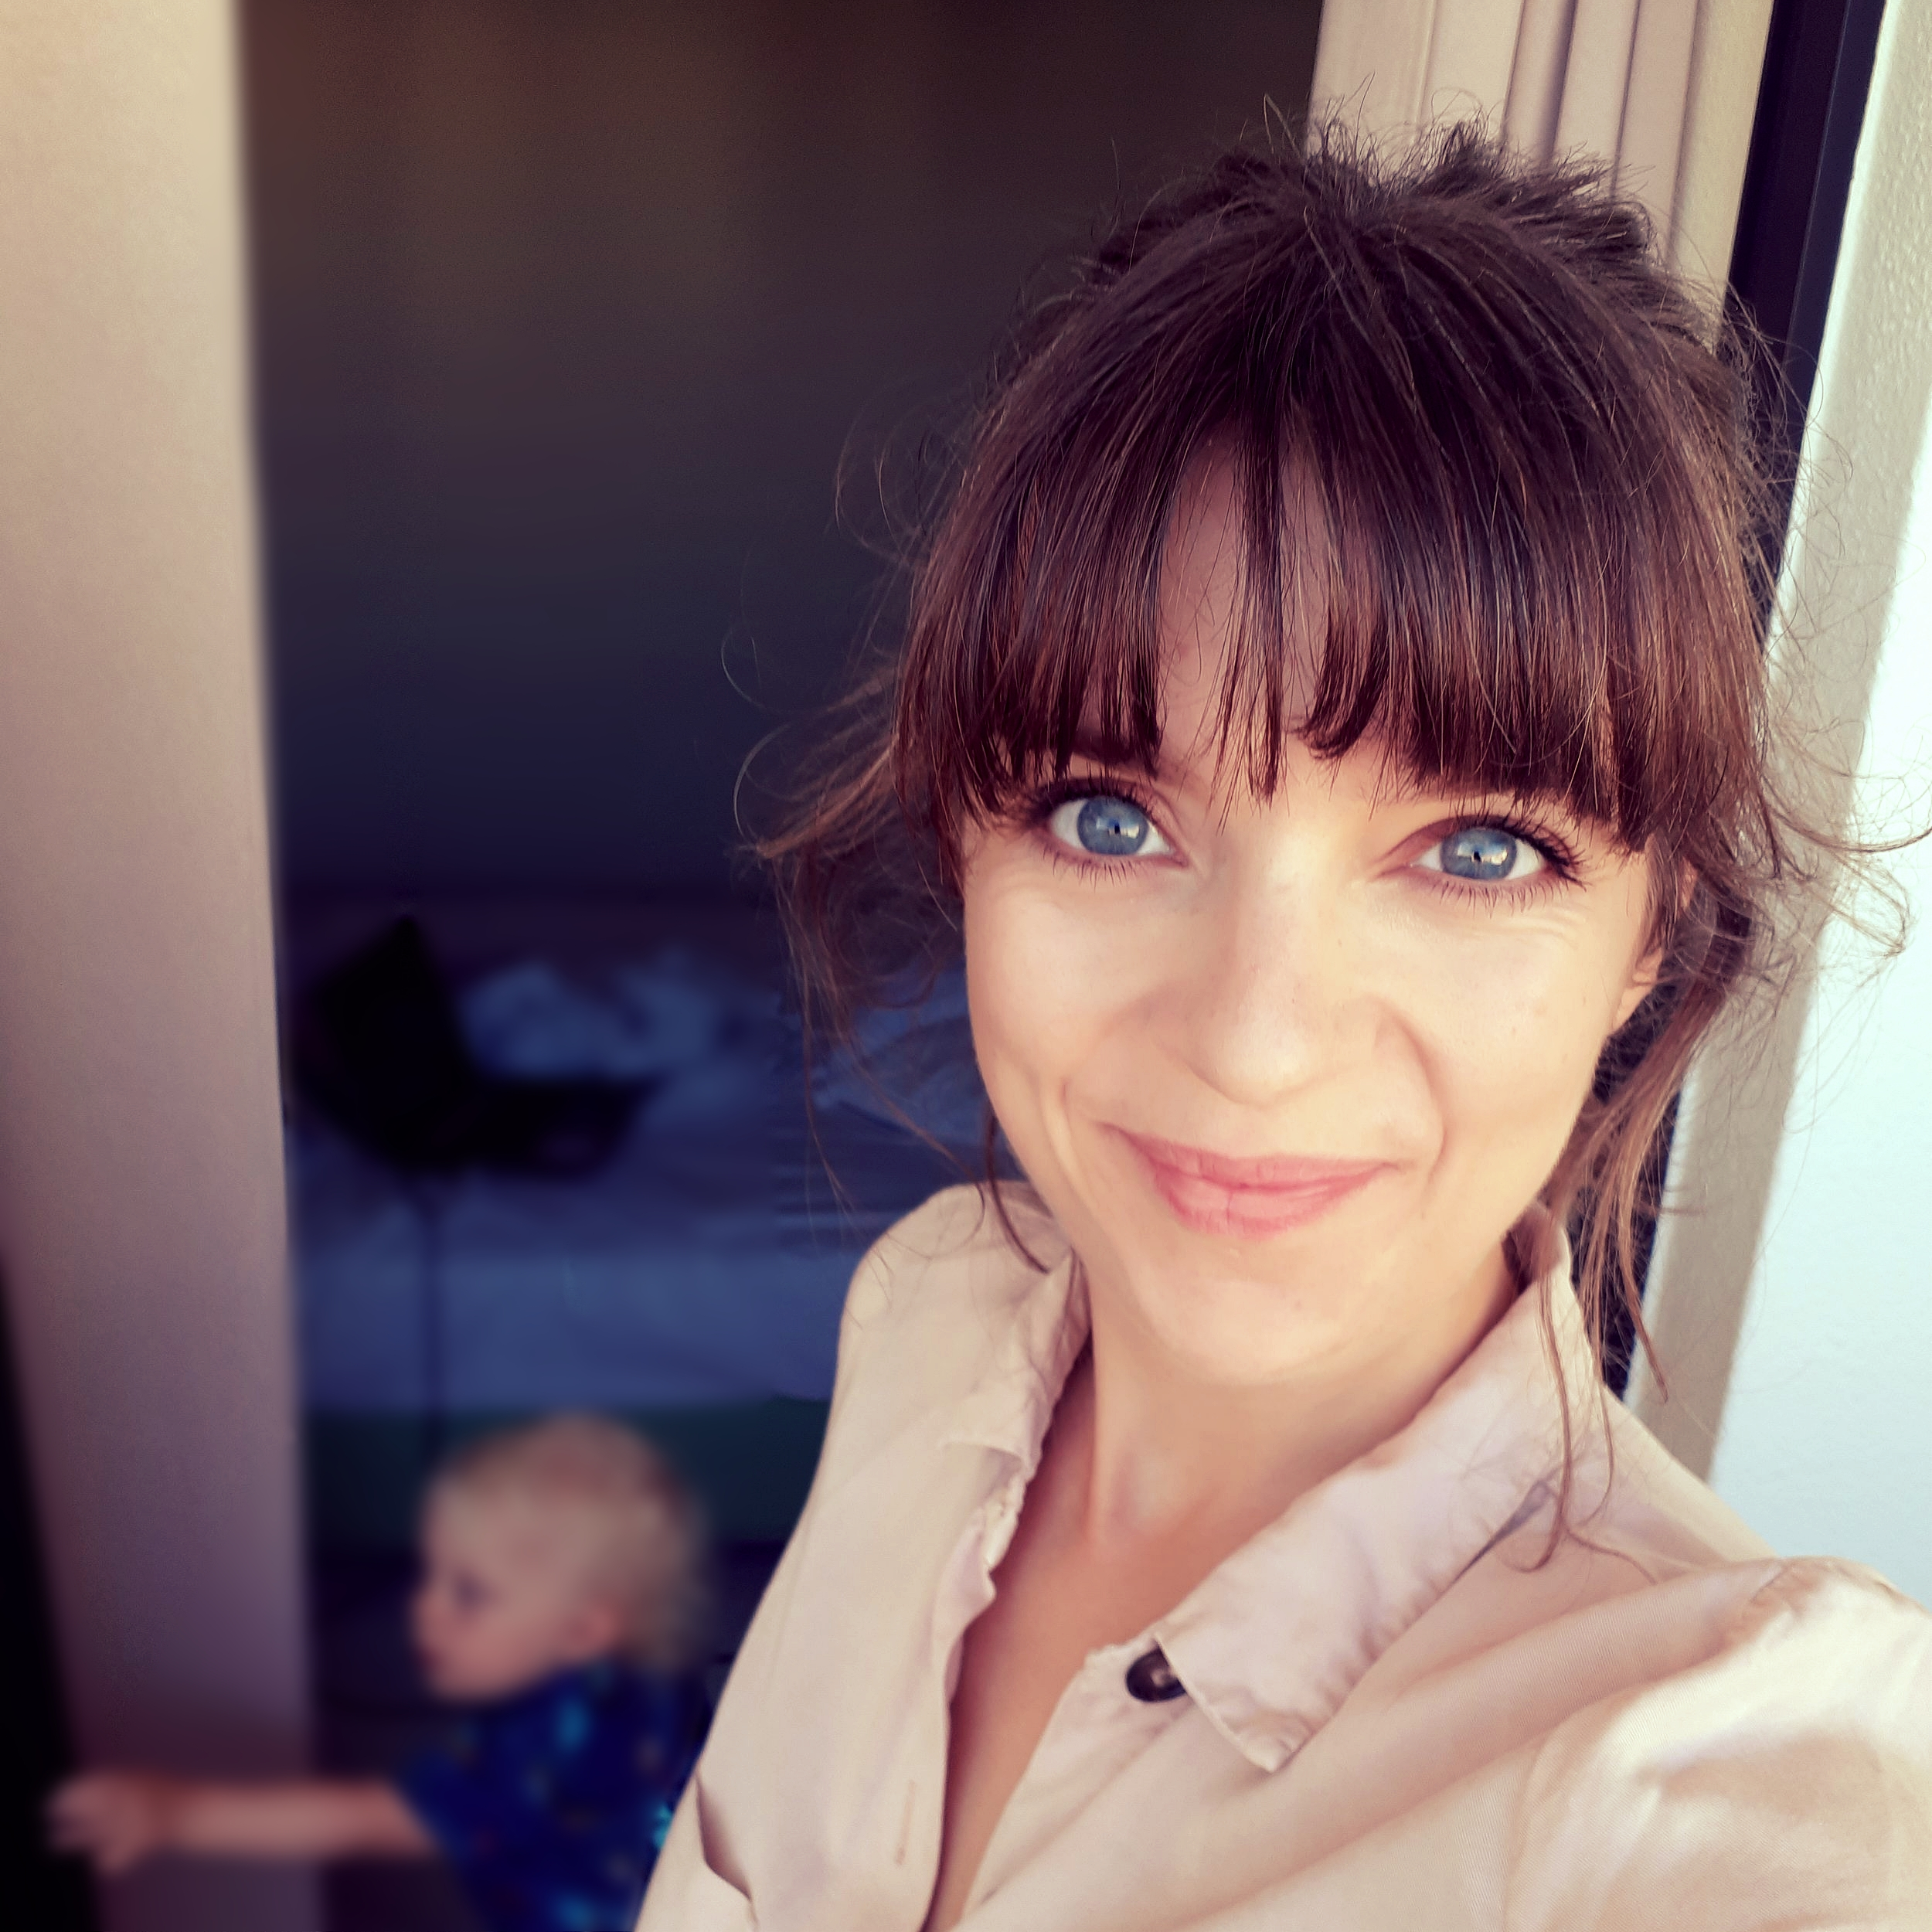 Shameless selfie awesome mama illustration uk parent blogger